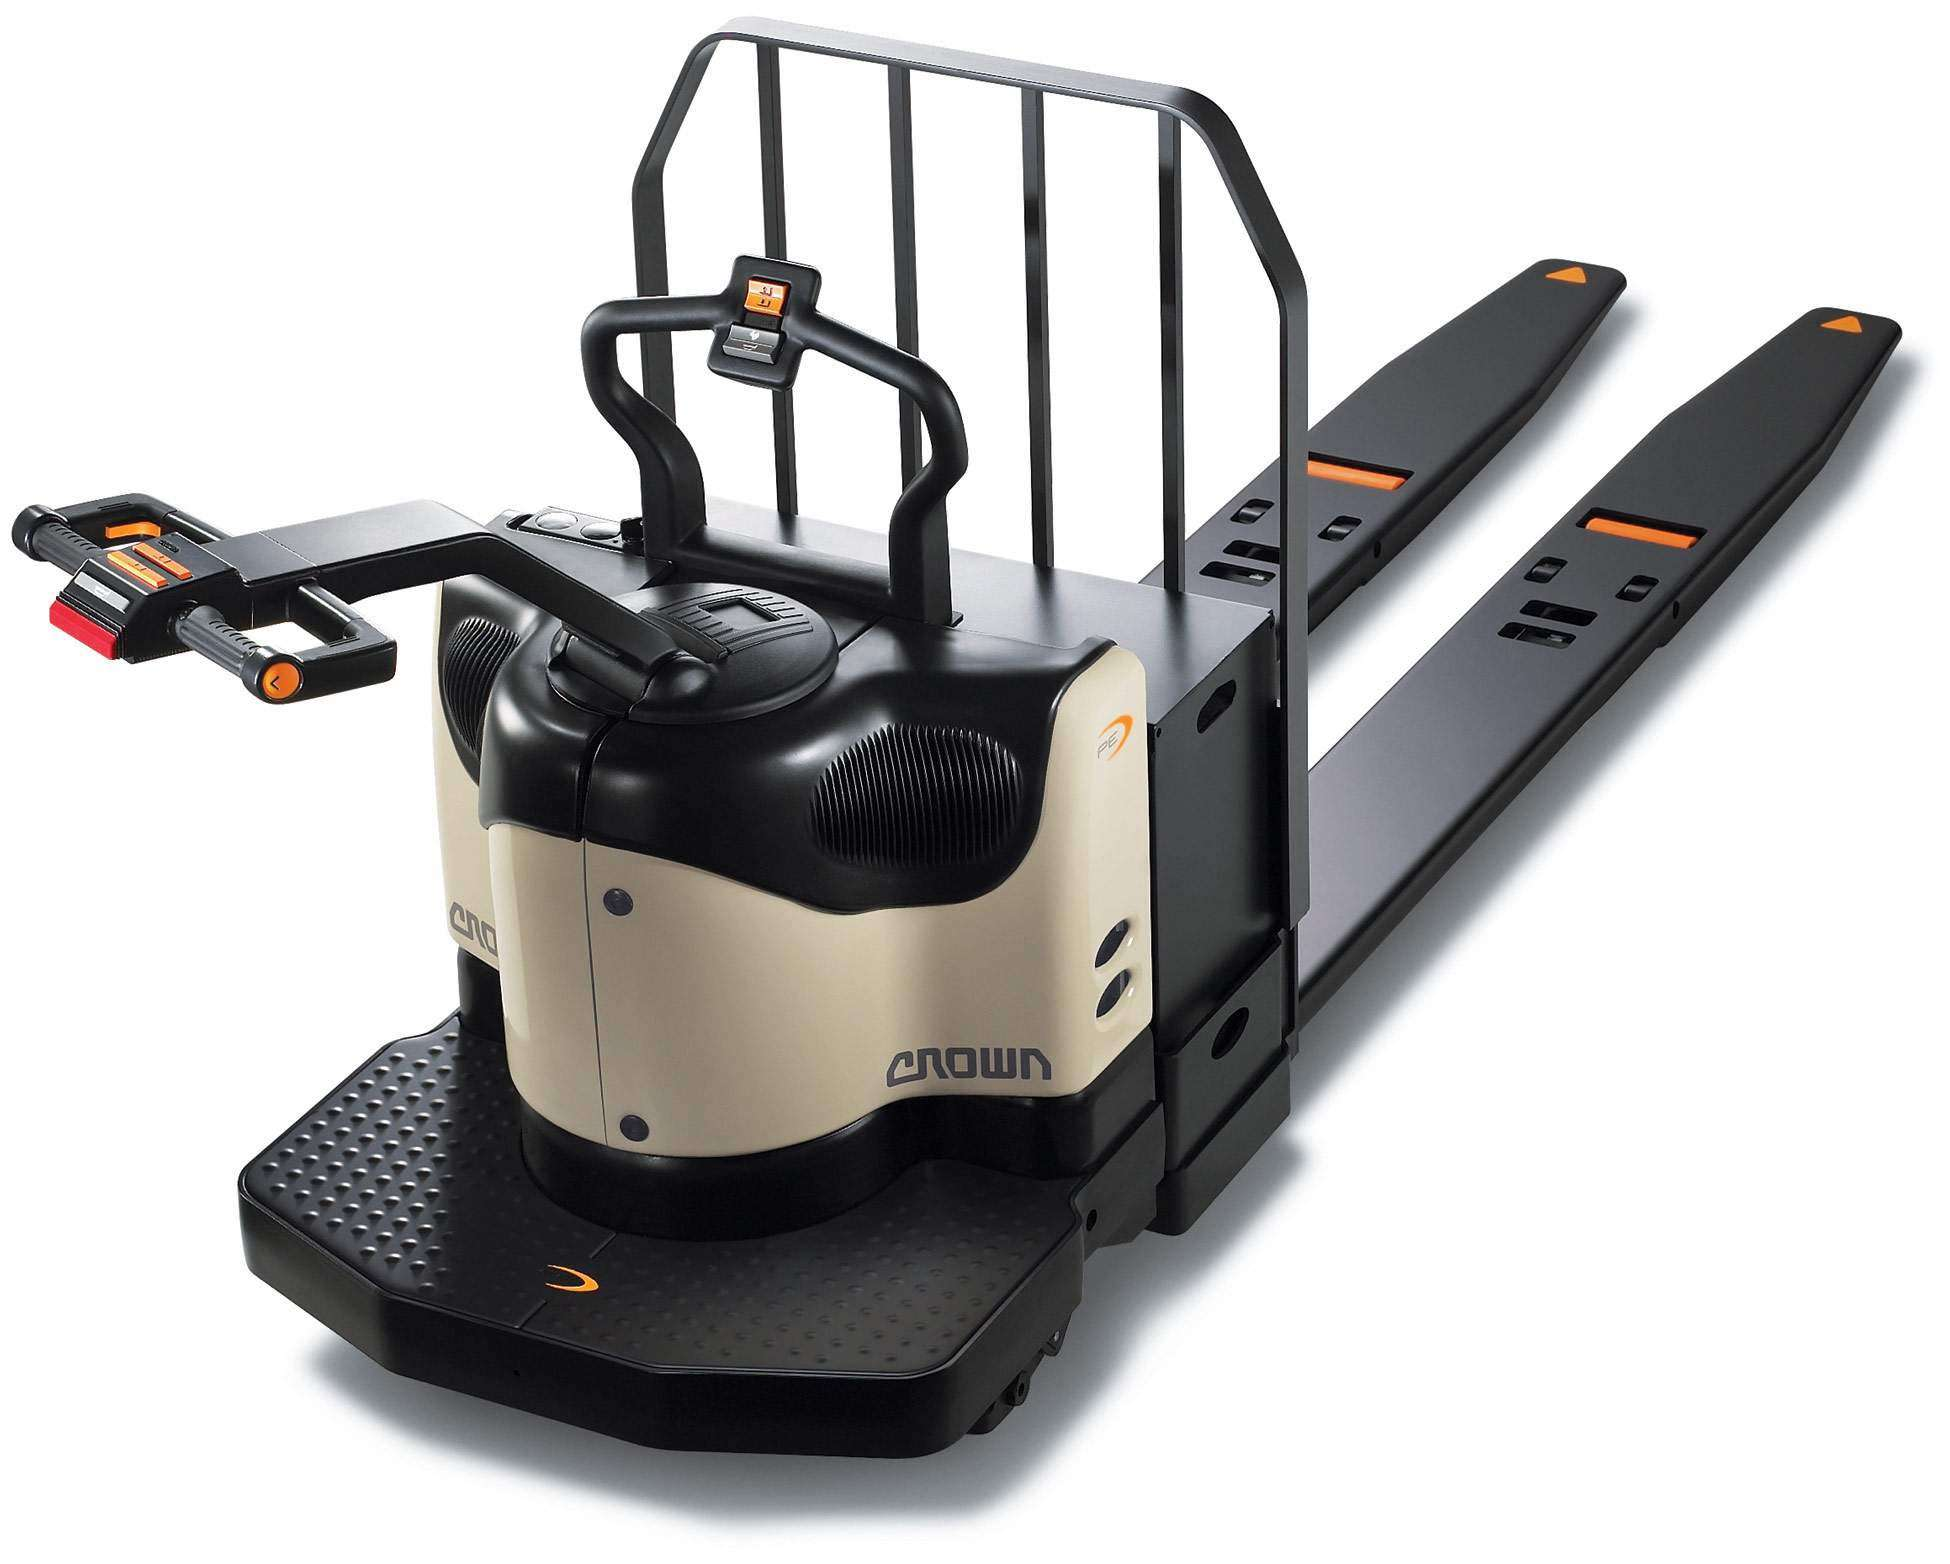 Crown Electric Pallet Jack Quotes